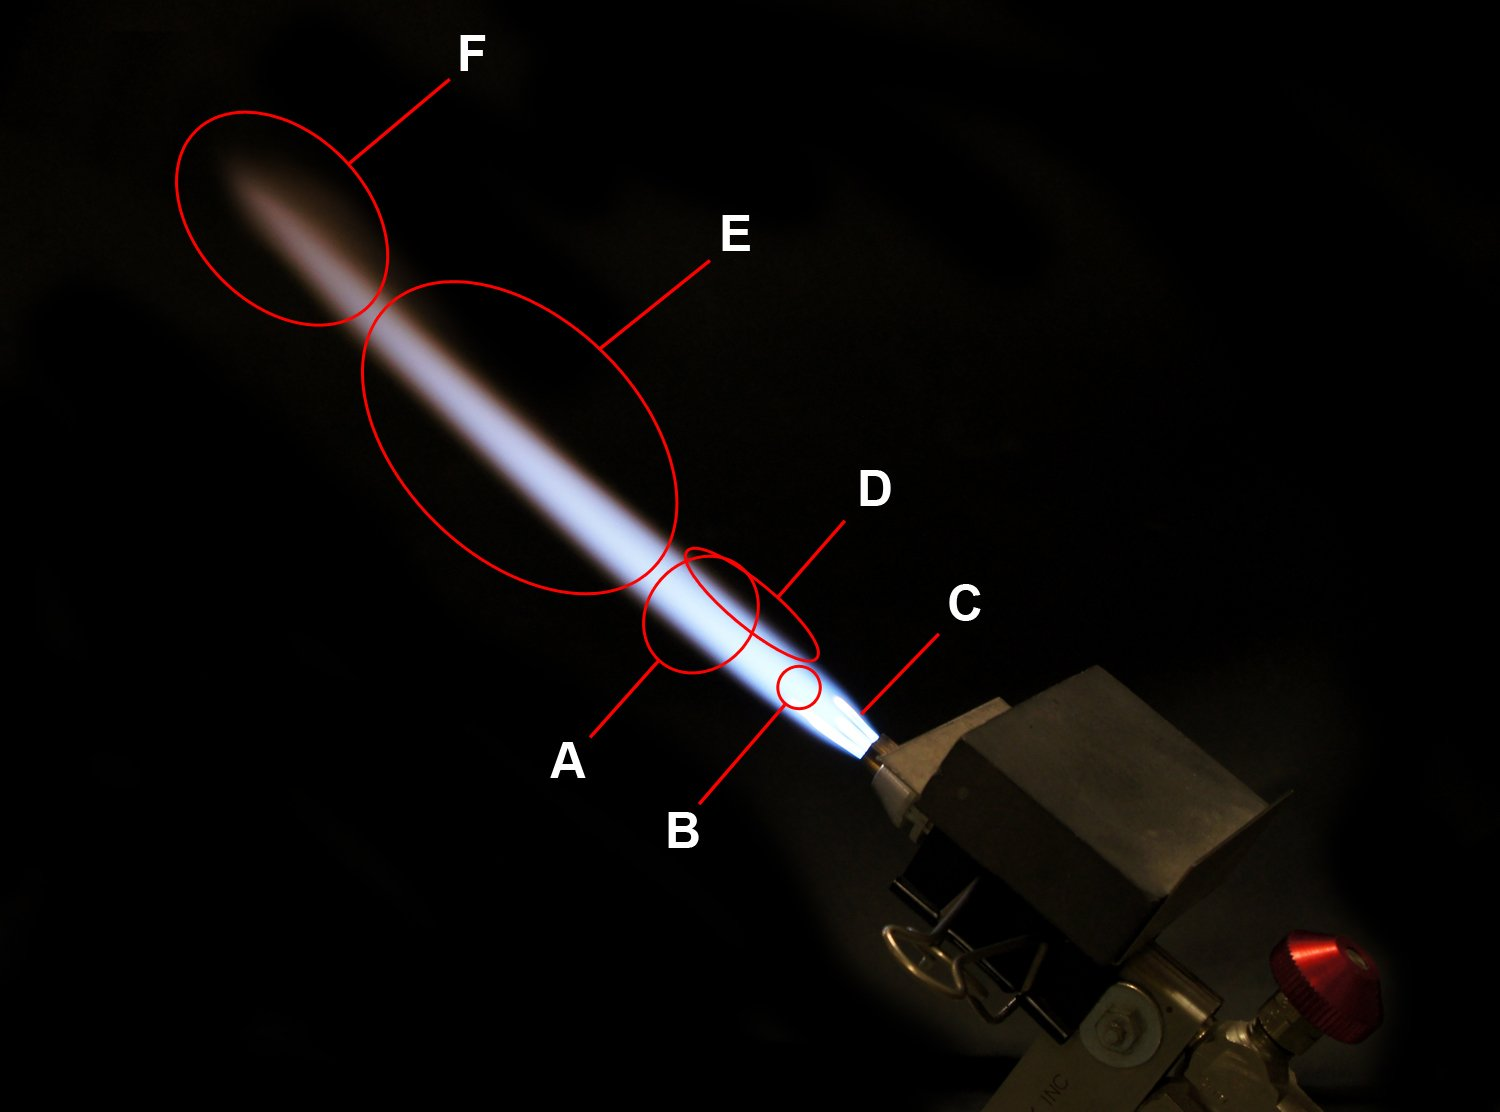 Parts of the Flame